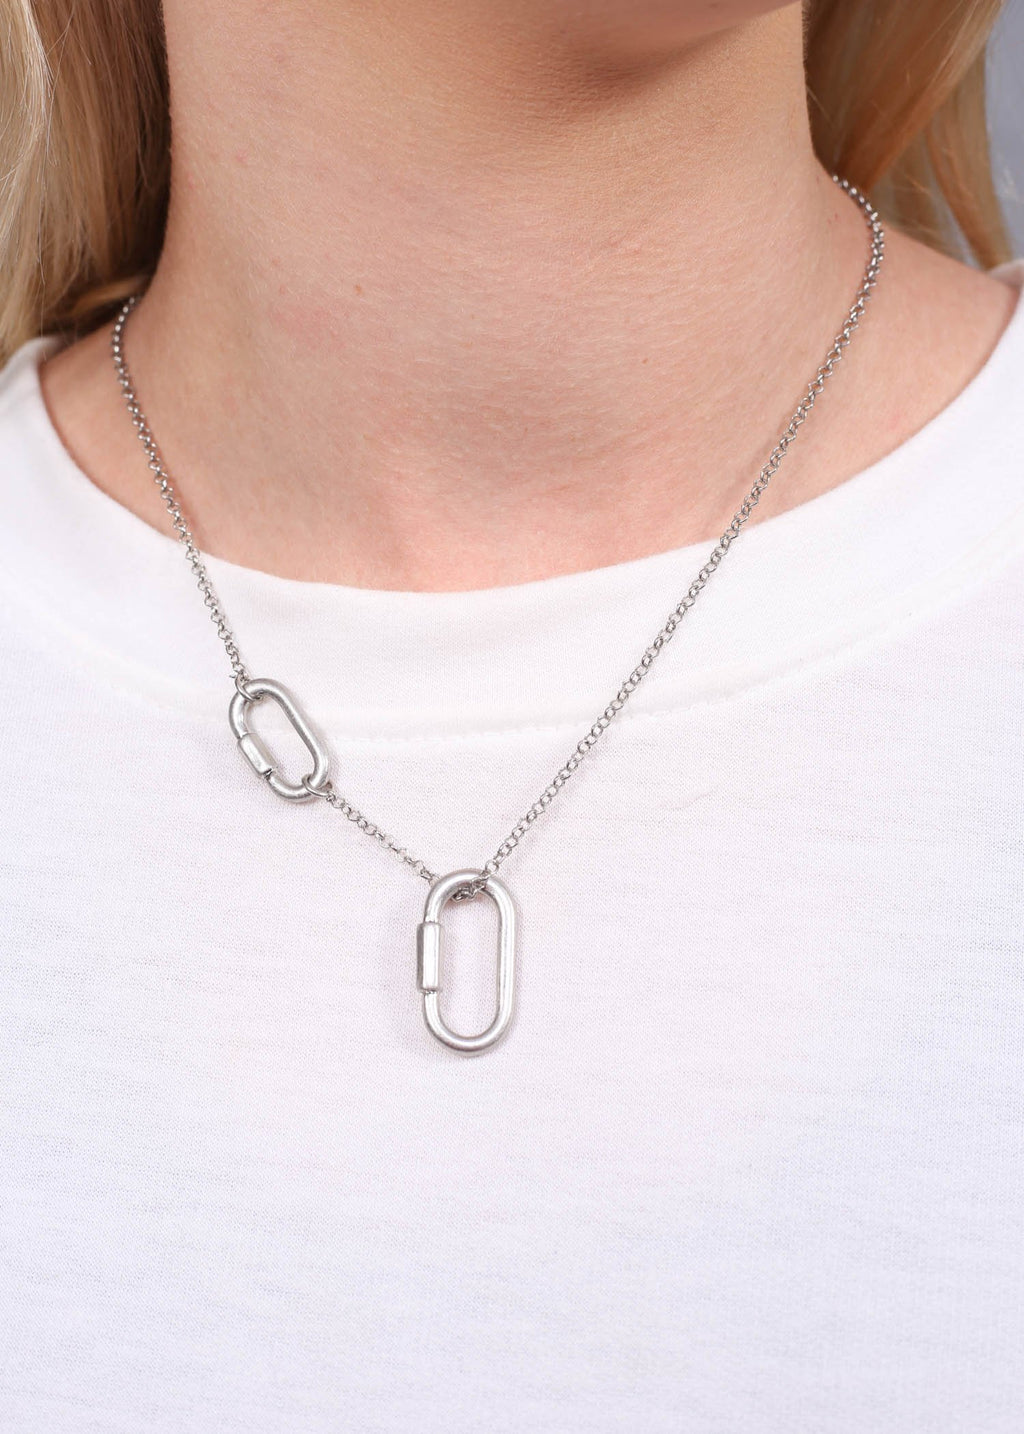 Gunner Necklace With Metal Links Silver - Caroline Hill